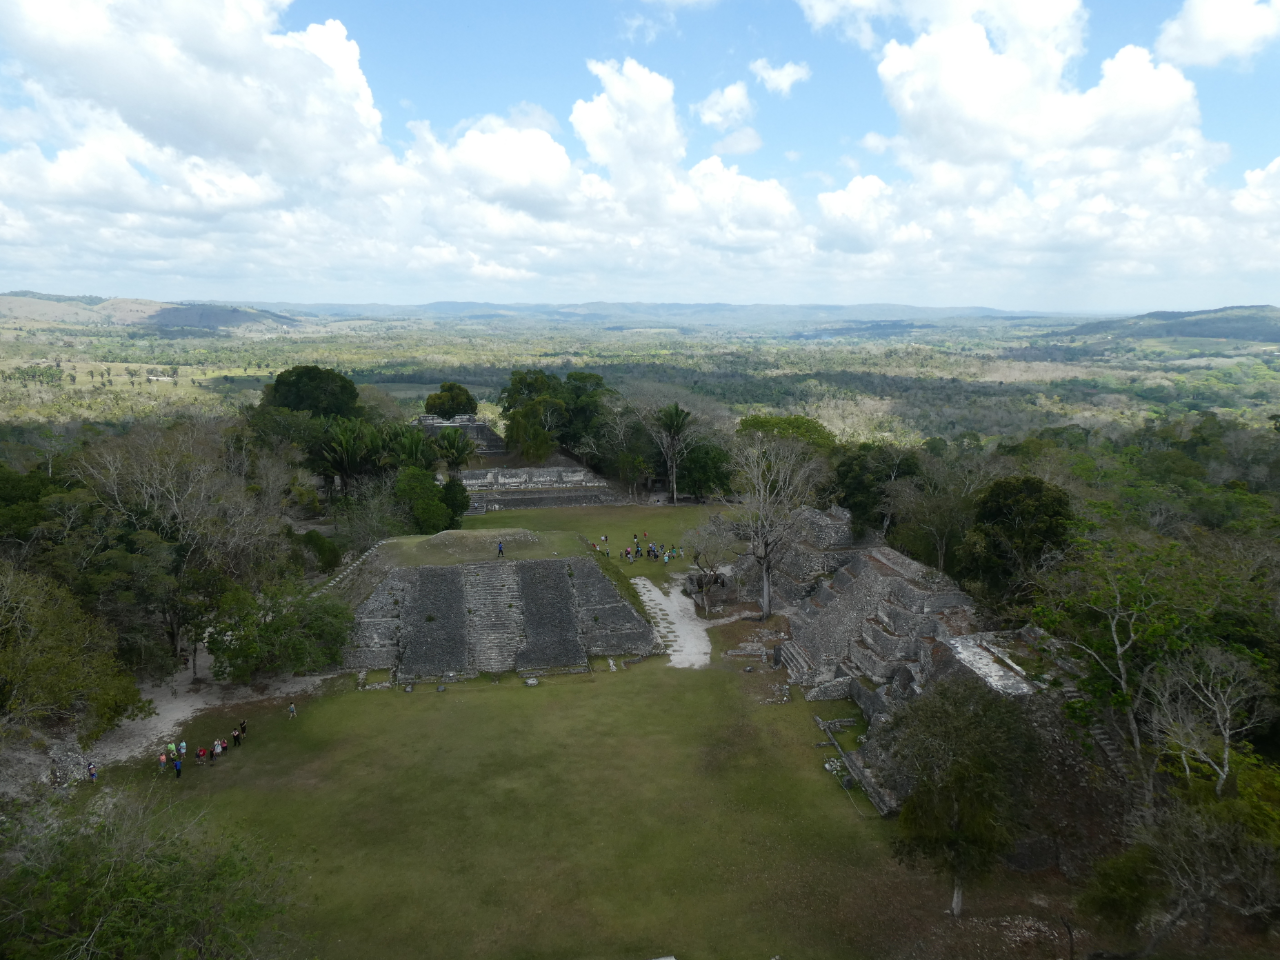 Photo 3: Site de Xunantunich au Belize